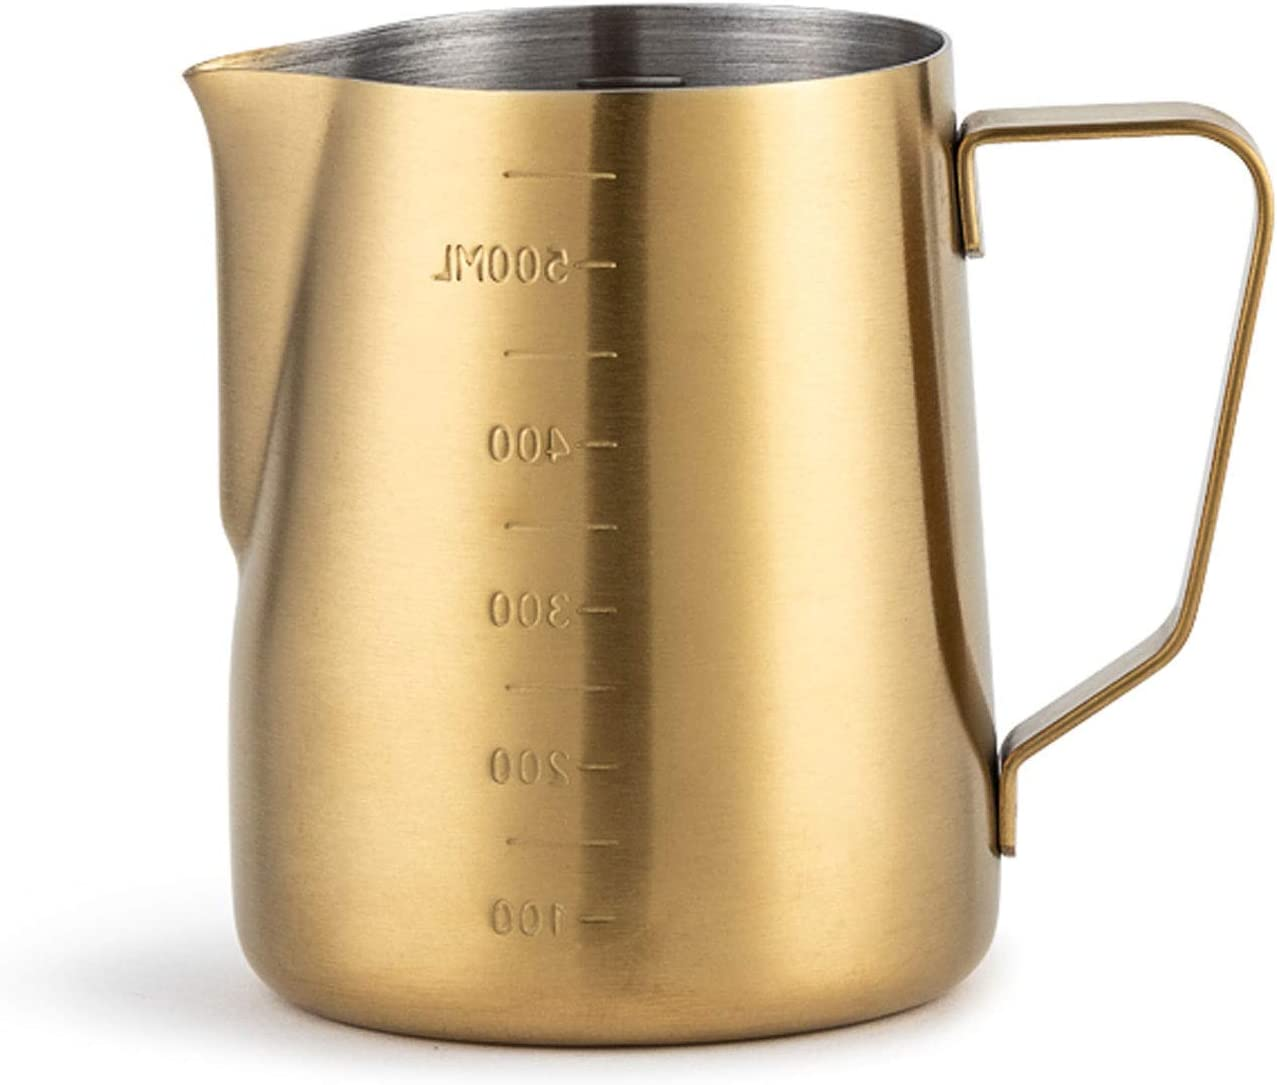 Creamer Pitcher Large-capacity Milk Challenge Baltimore Mall the lowest price Froth Double Stain Scale Pot